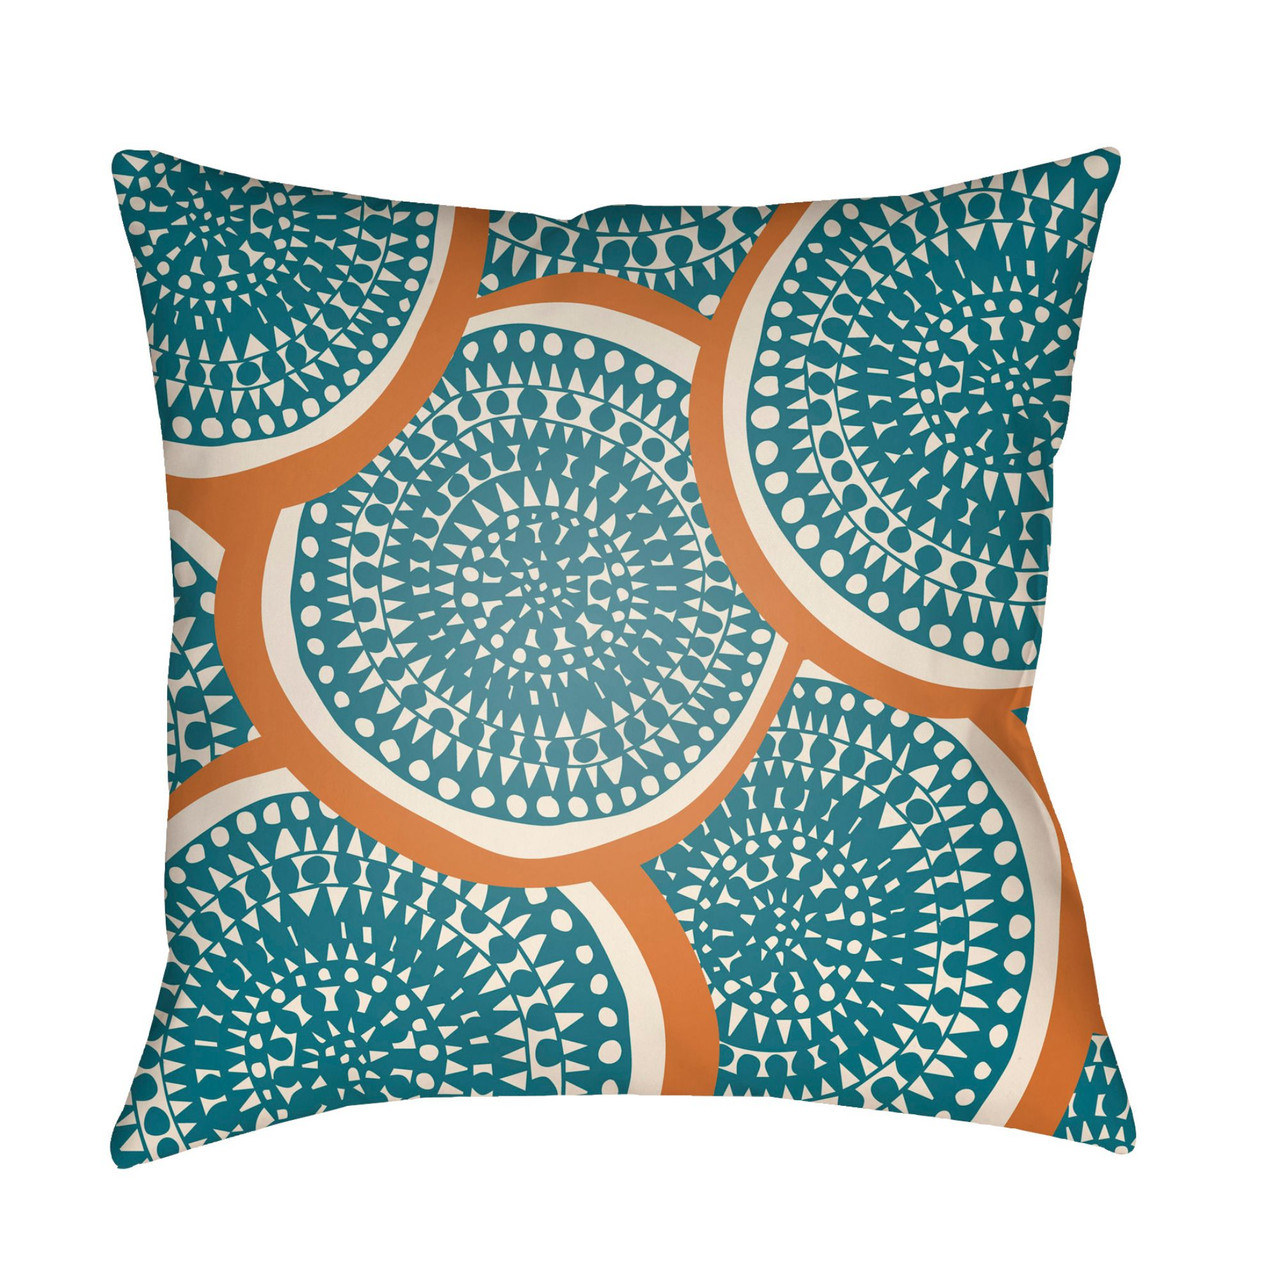 4 Sizes Keely Blue Violet and Turquoise Floral Mums Spun Polyester Square Pillow